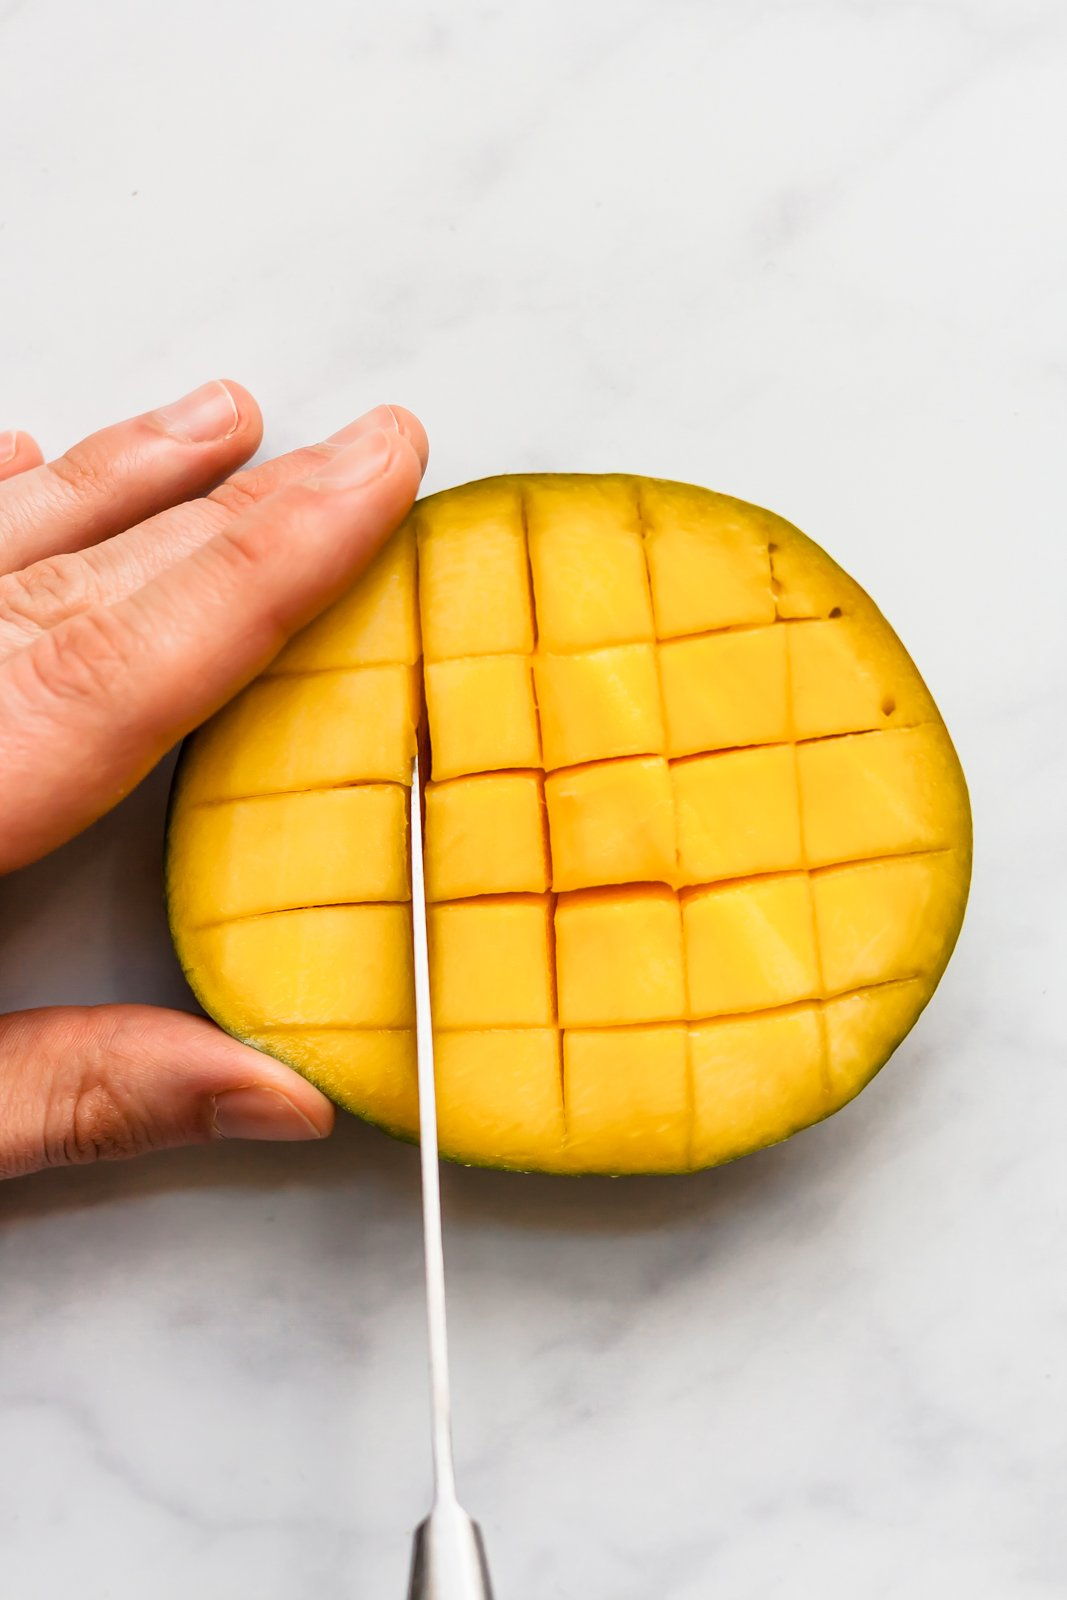 cutting half of a mango into cubes